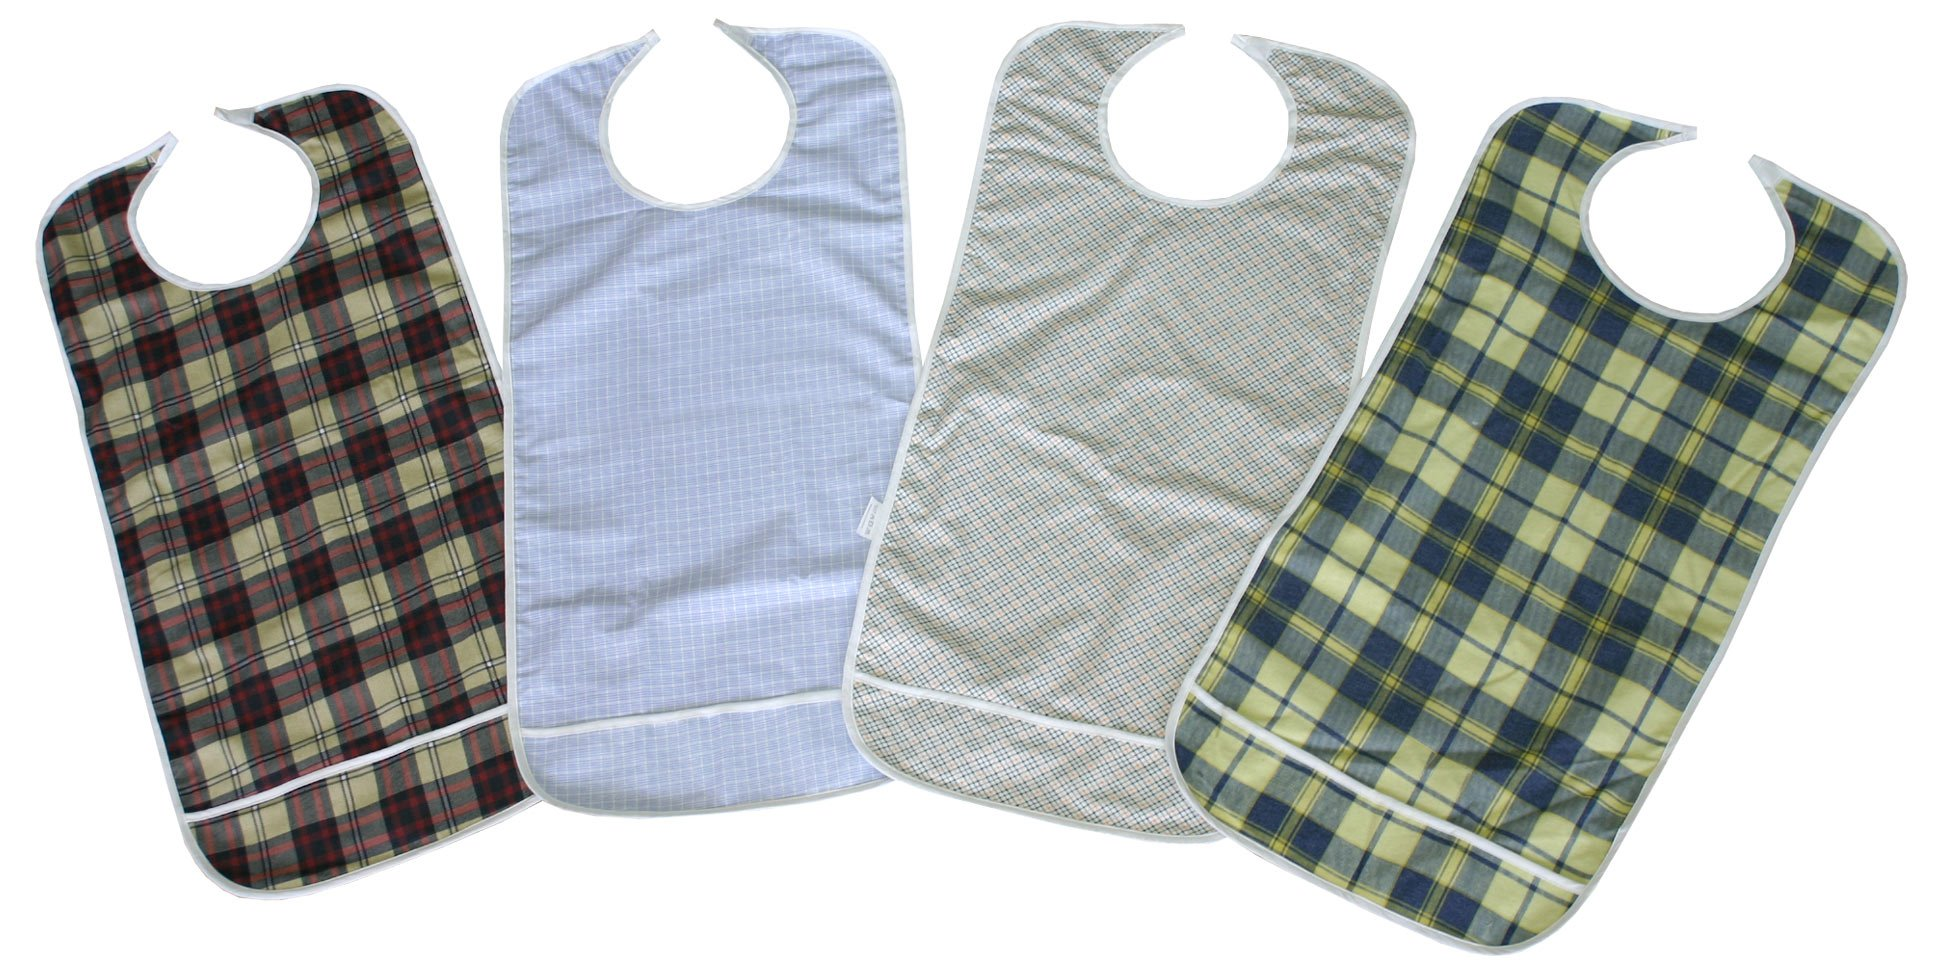 4 Pack Premium Adult Bibs with Crumb Catcher and Vinyl Backing